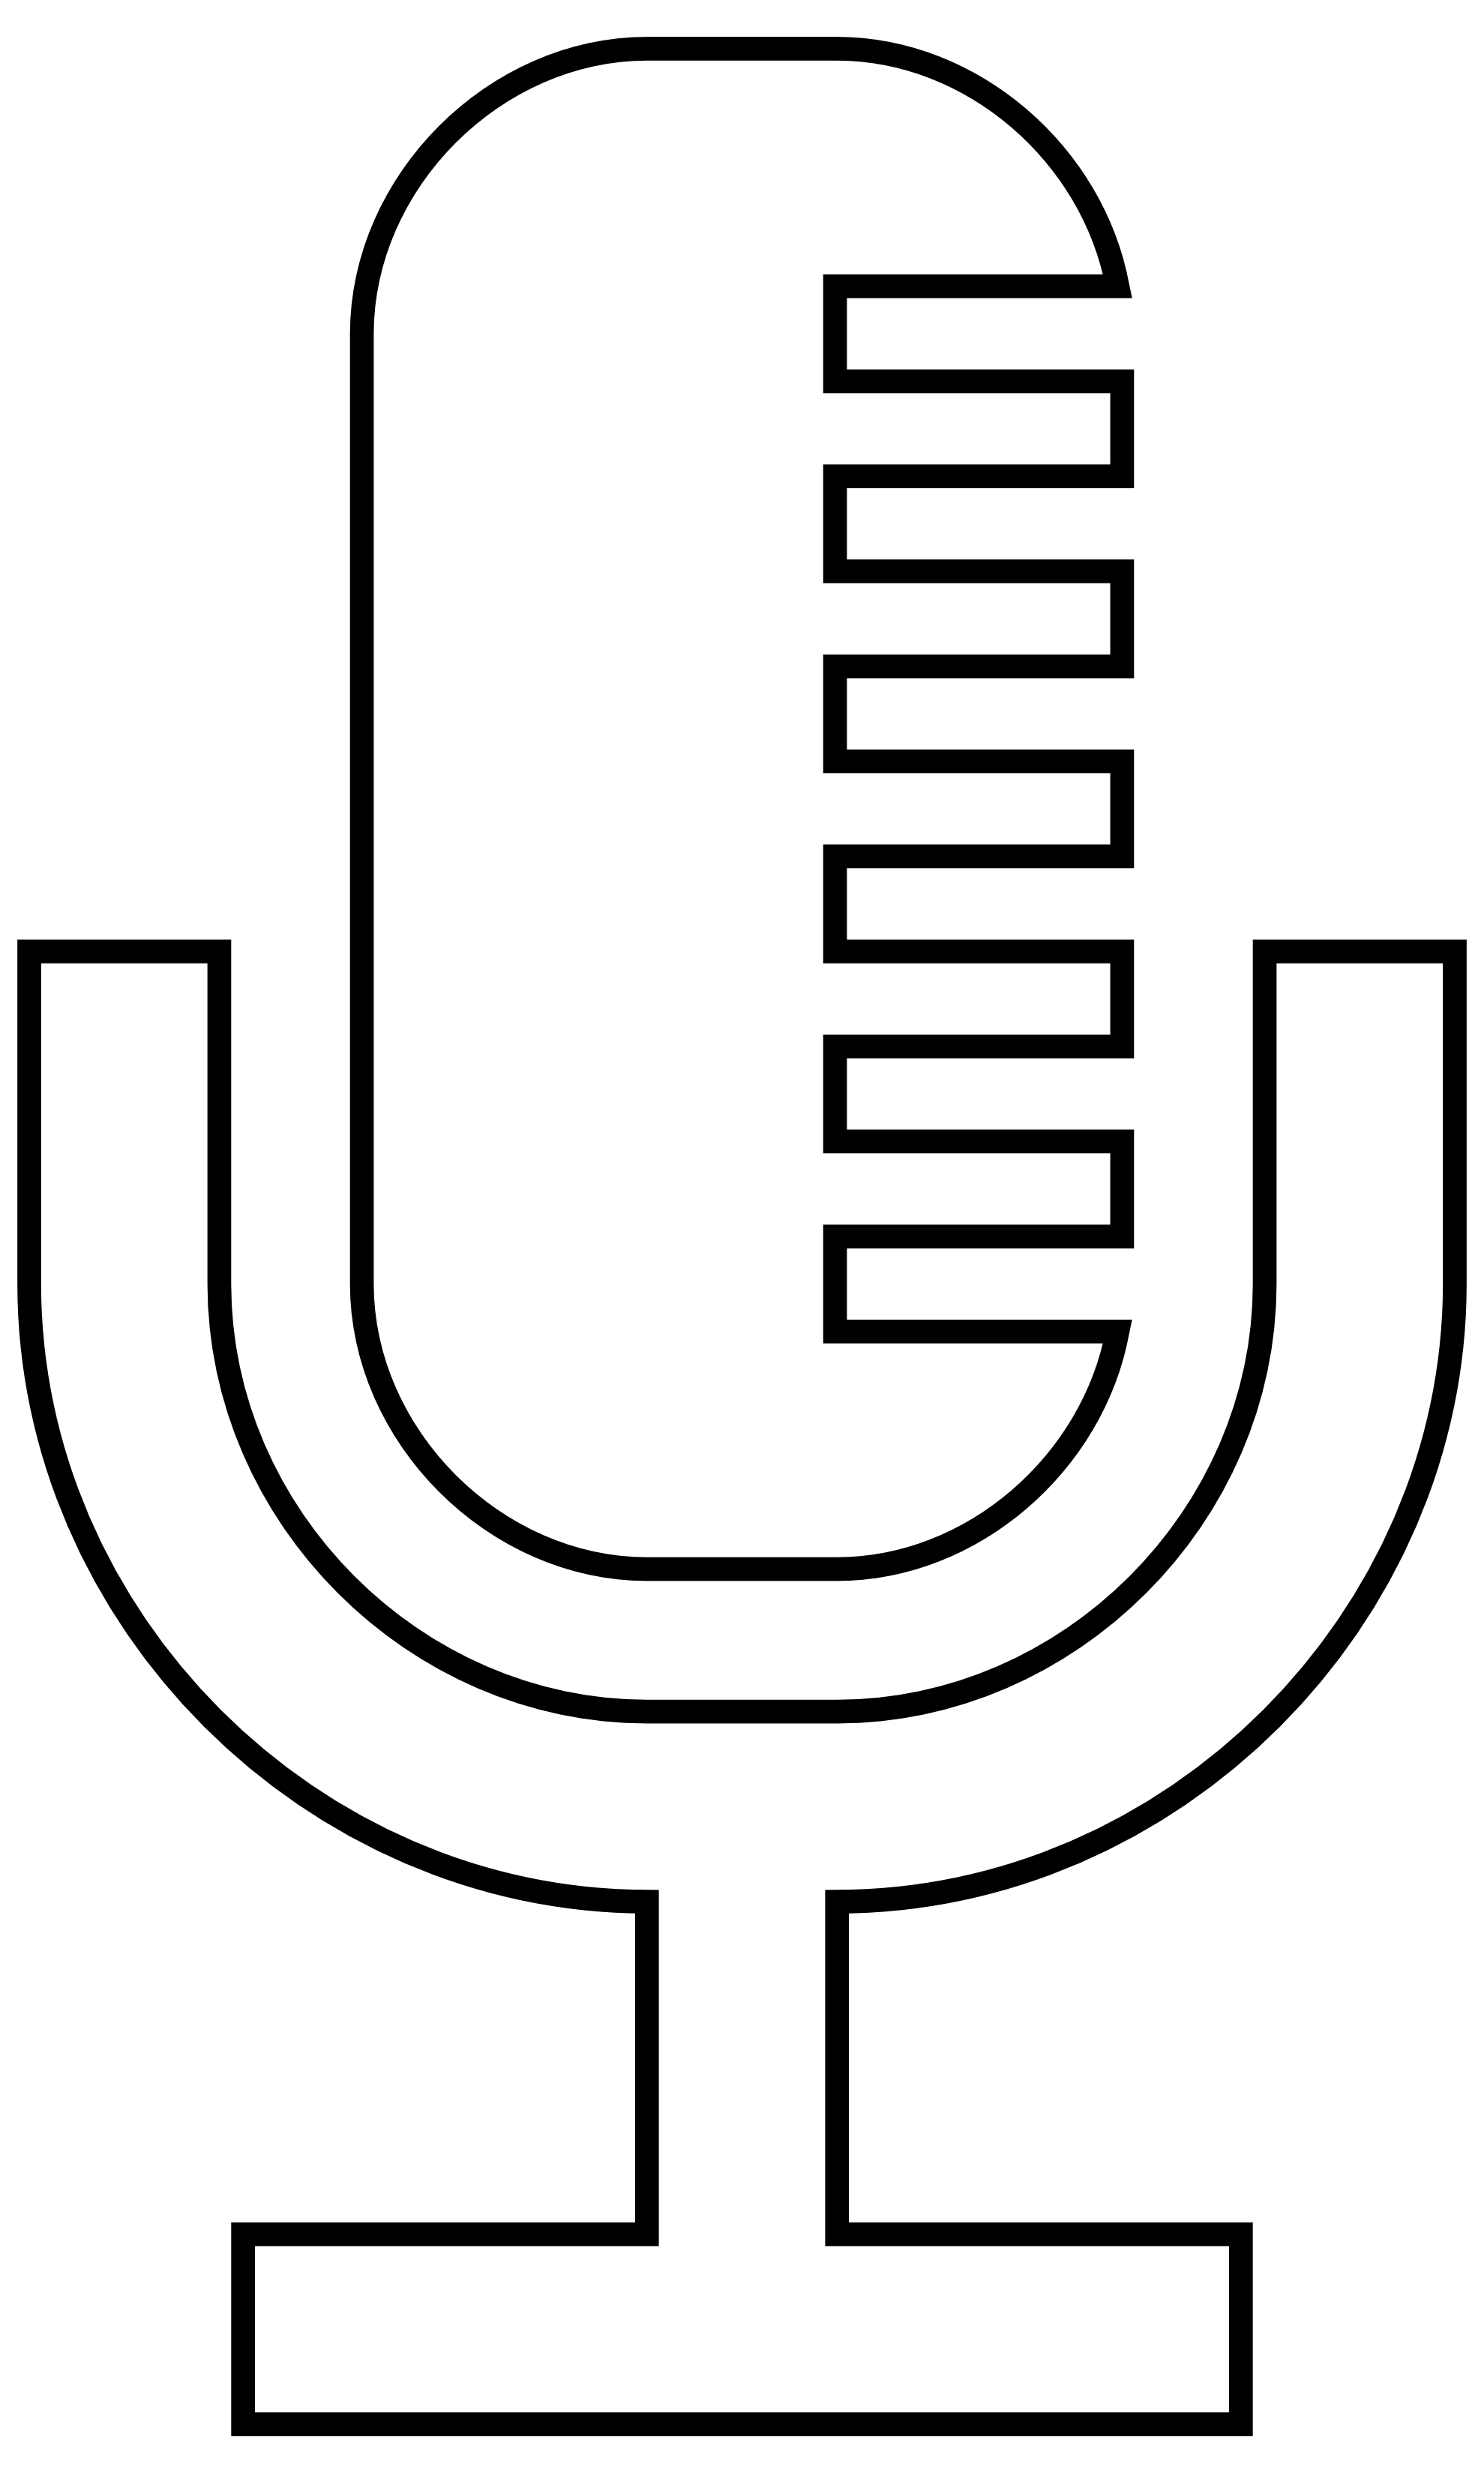 Microphone clipart studio microphone. Free pictures download clip